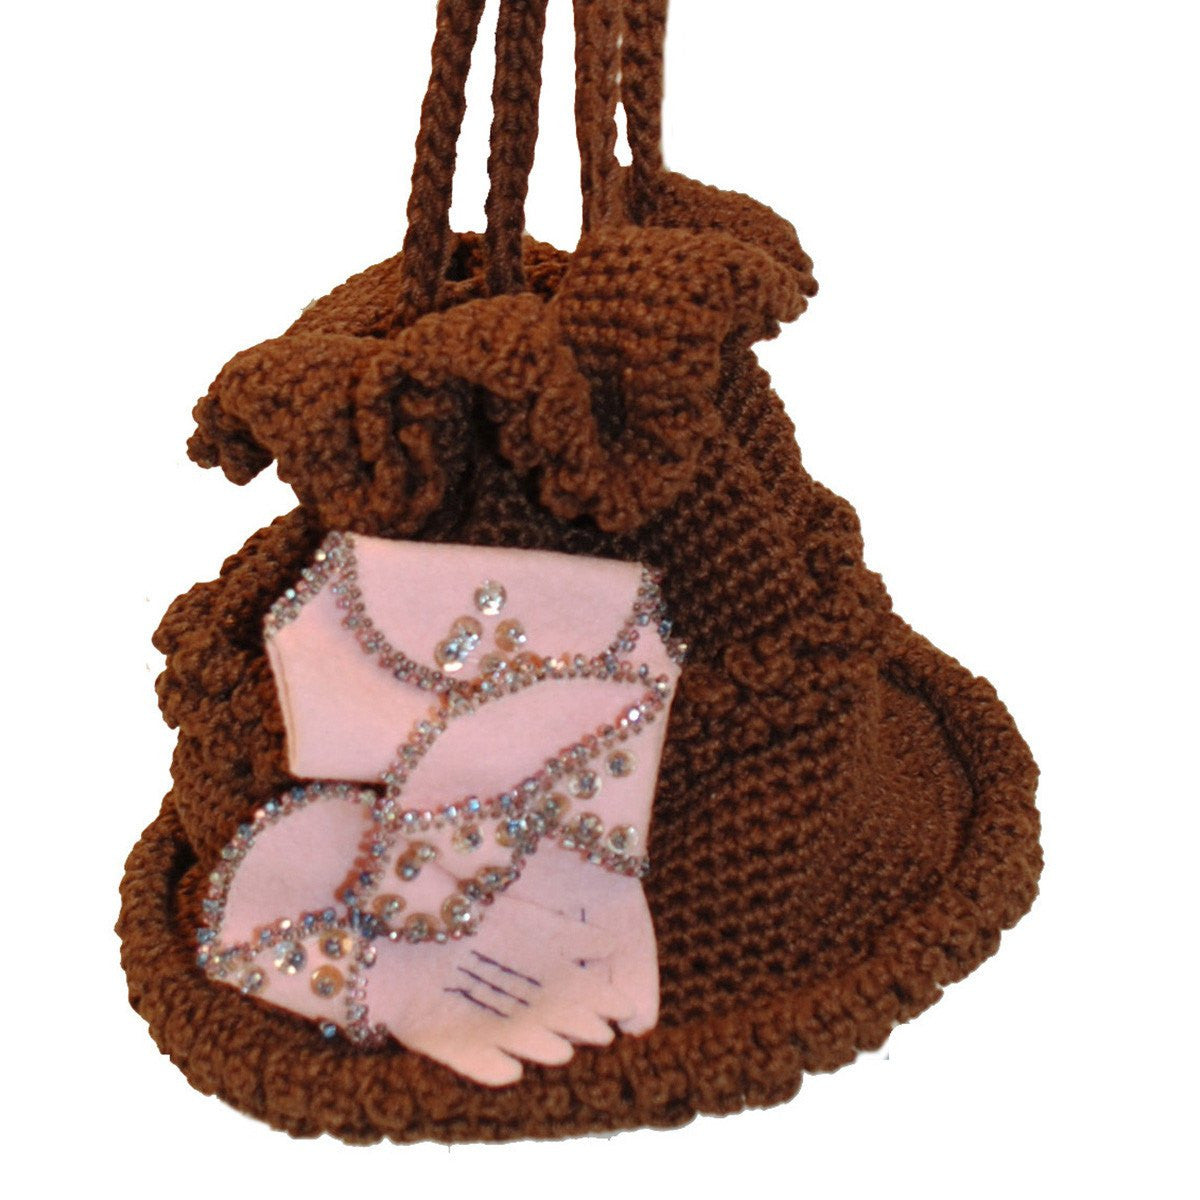 1960s Brown Knit Purse 2, Pink Glove Appliqué